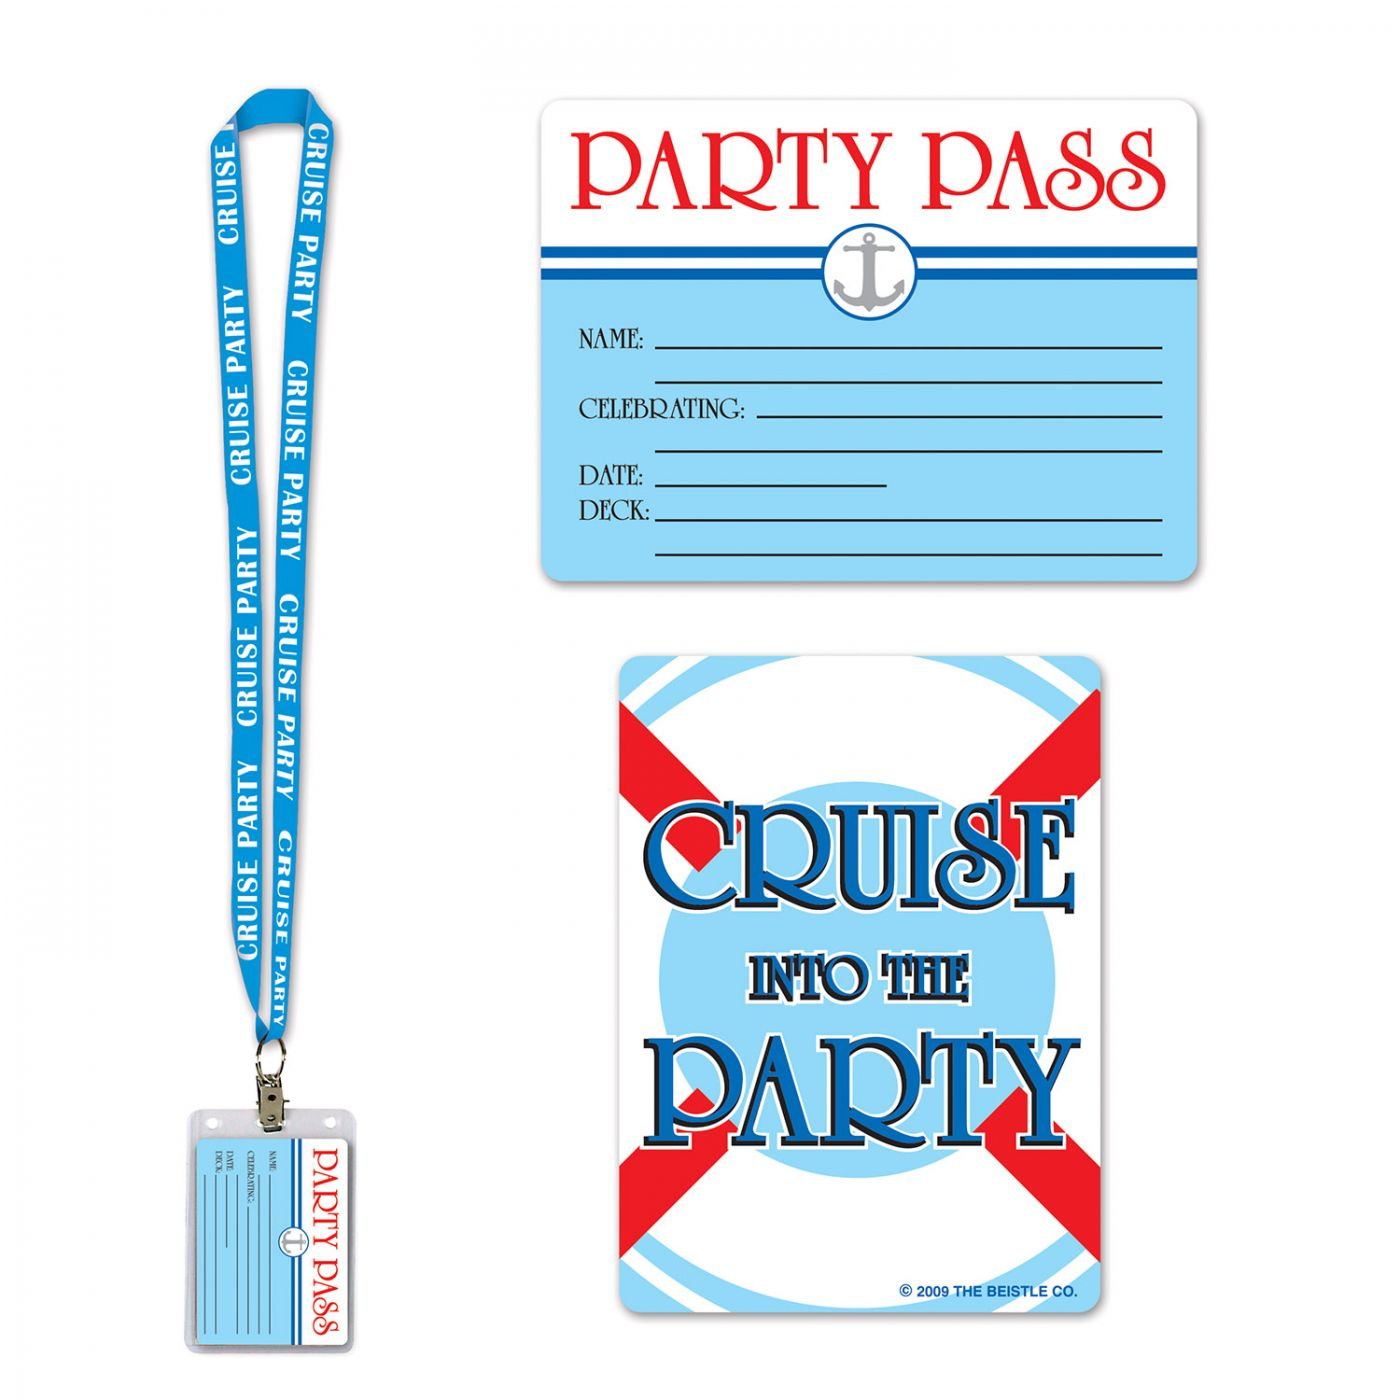 Cruise Ship Party Pass image